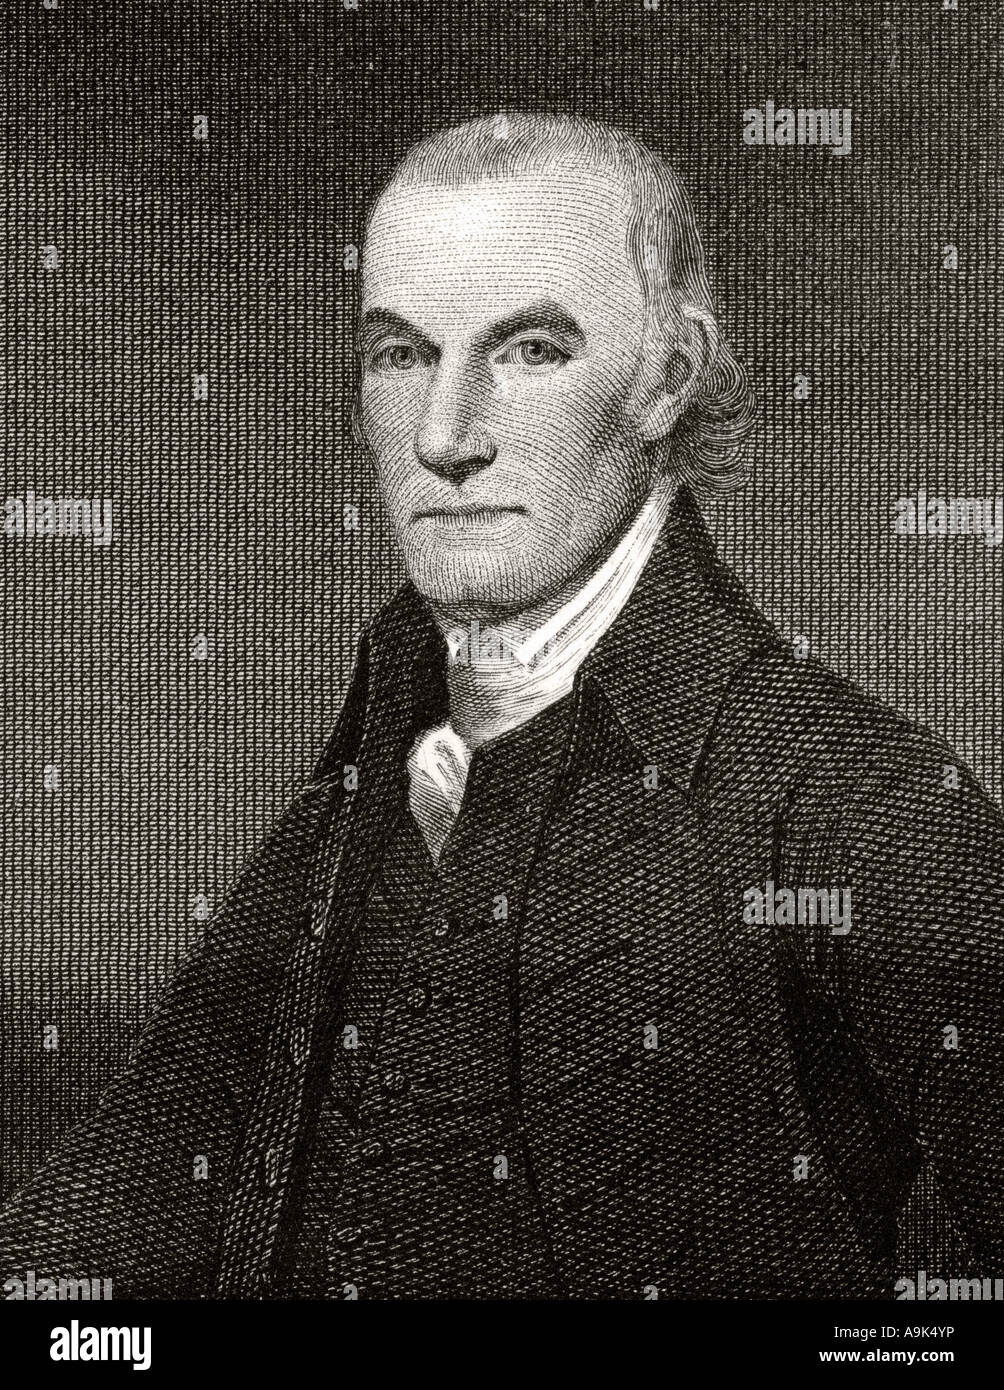 William Floyd 1734 to 1821.  American statesman and Founding Father - Stock Image